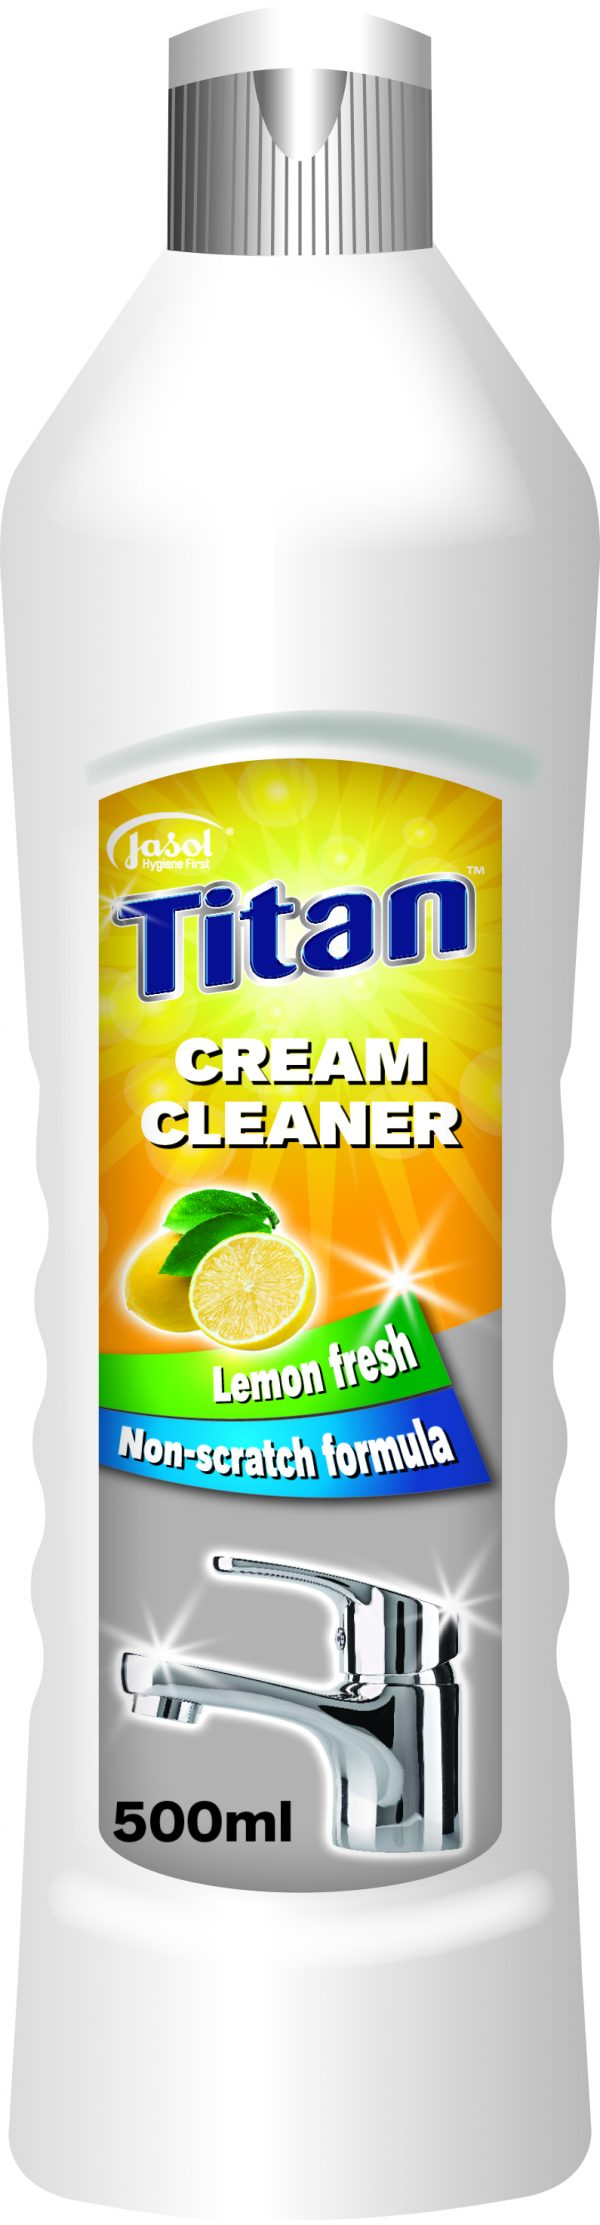 3000160 – Titan Cream Cleaner 500ml